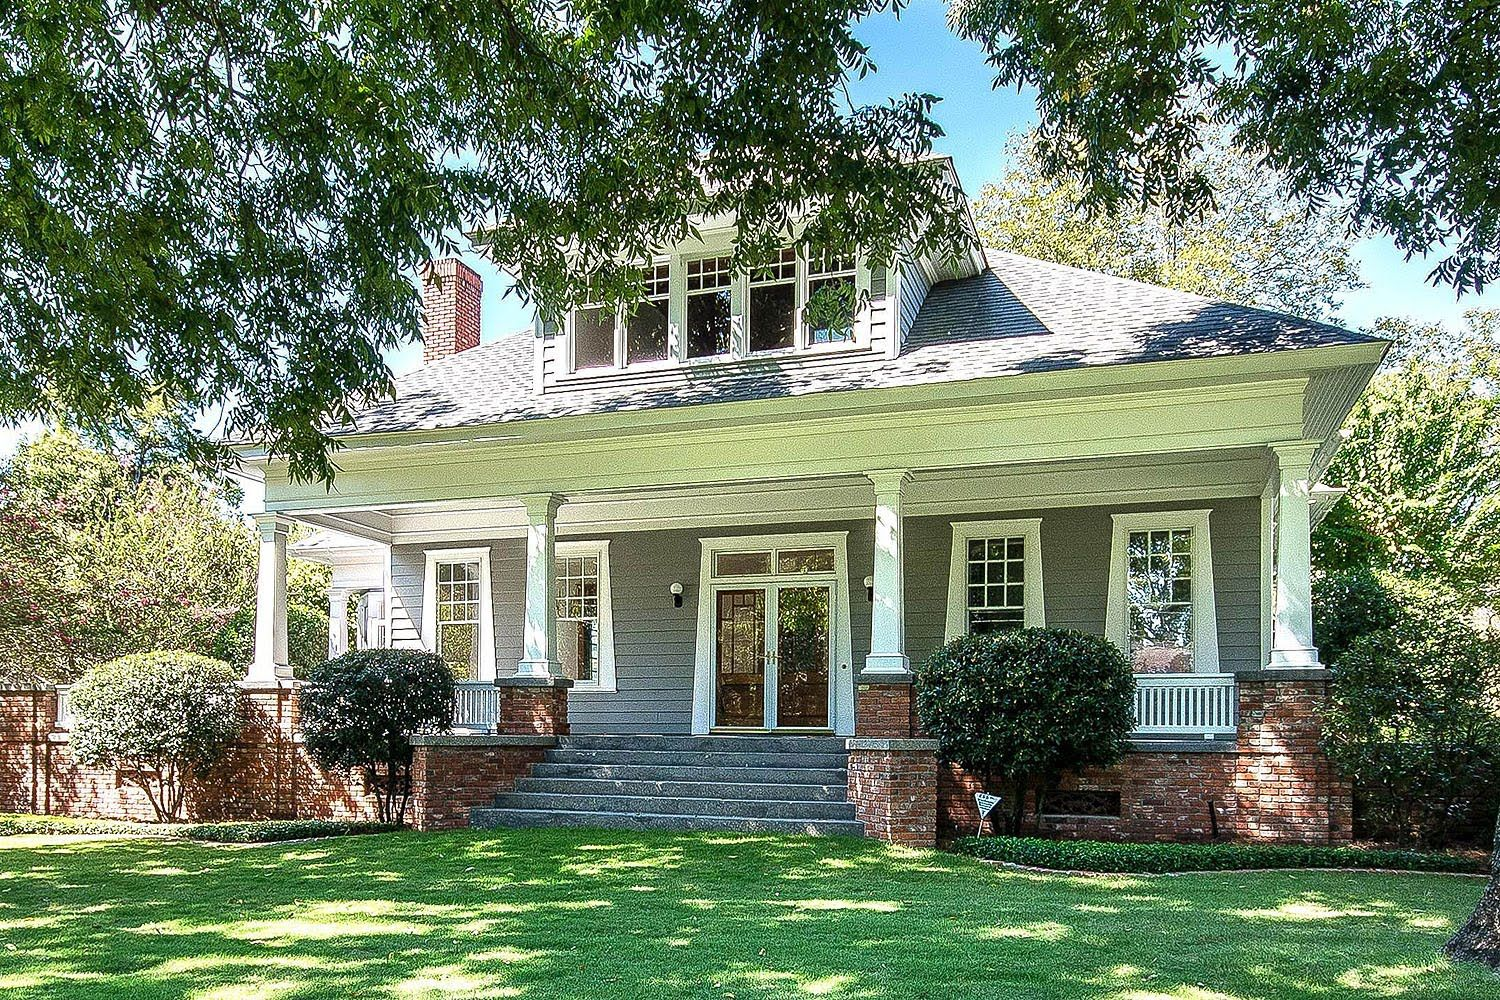 Modern Homes For Sale In Montgomery Alabama Garden District Modern Homes For Sale House Styles